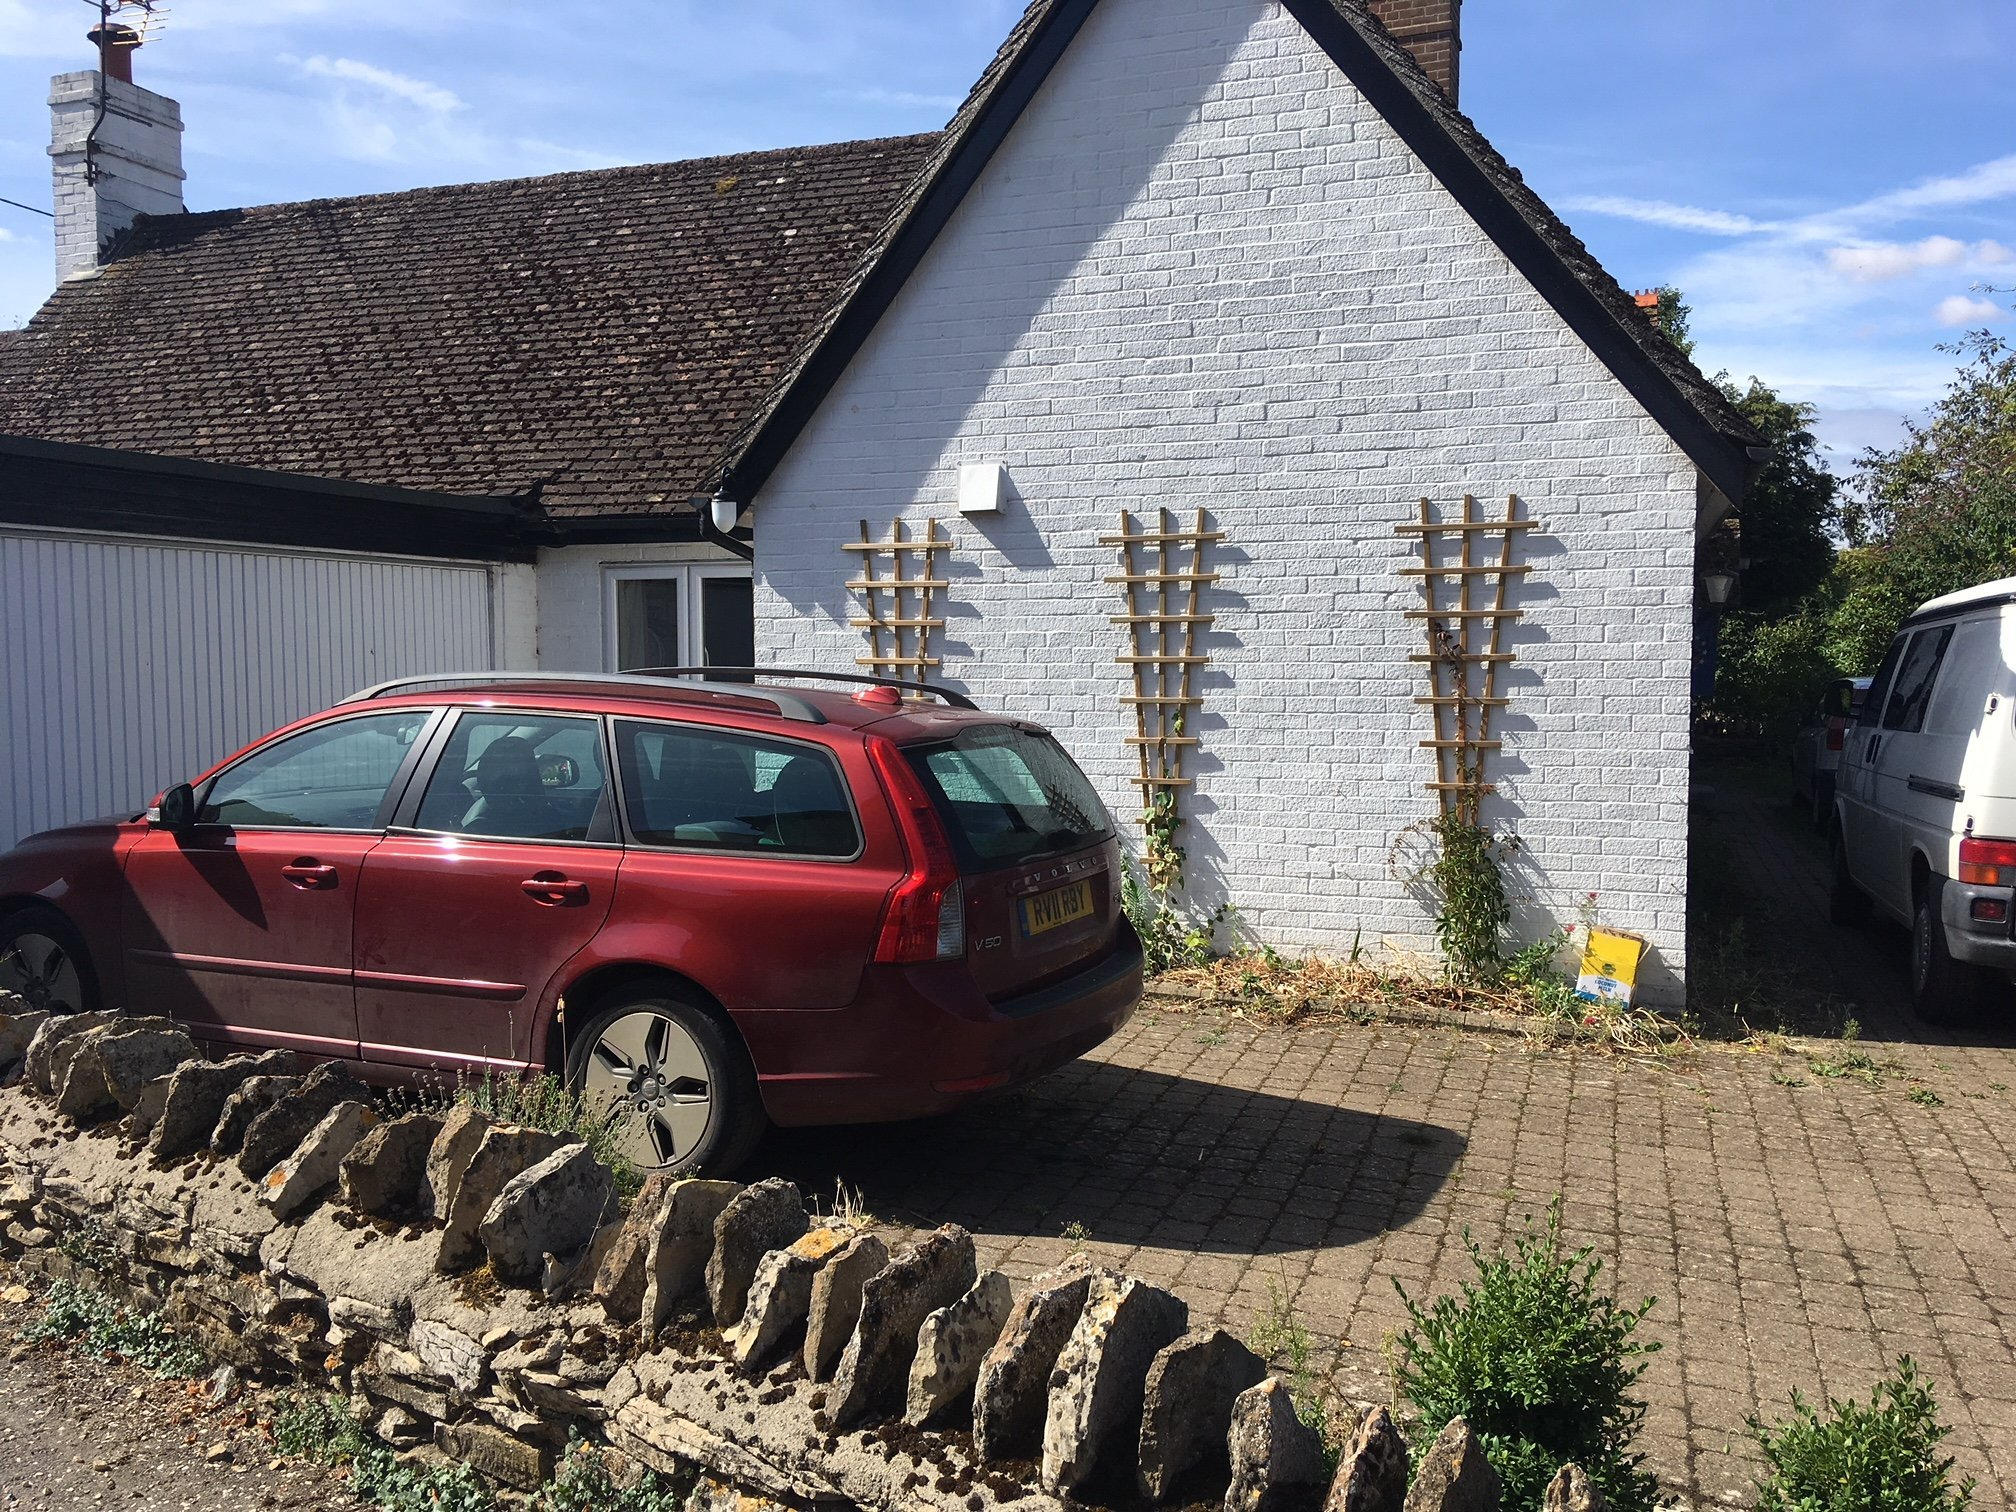 eight , or first car: parking very close to the garage door